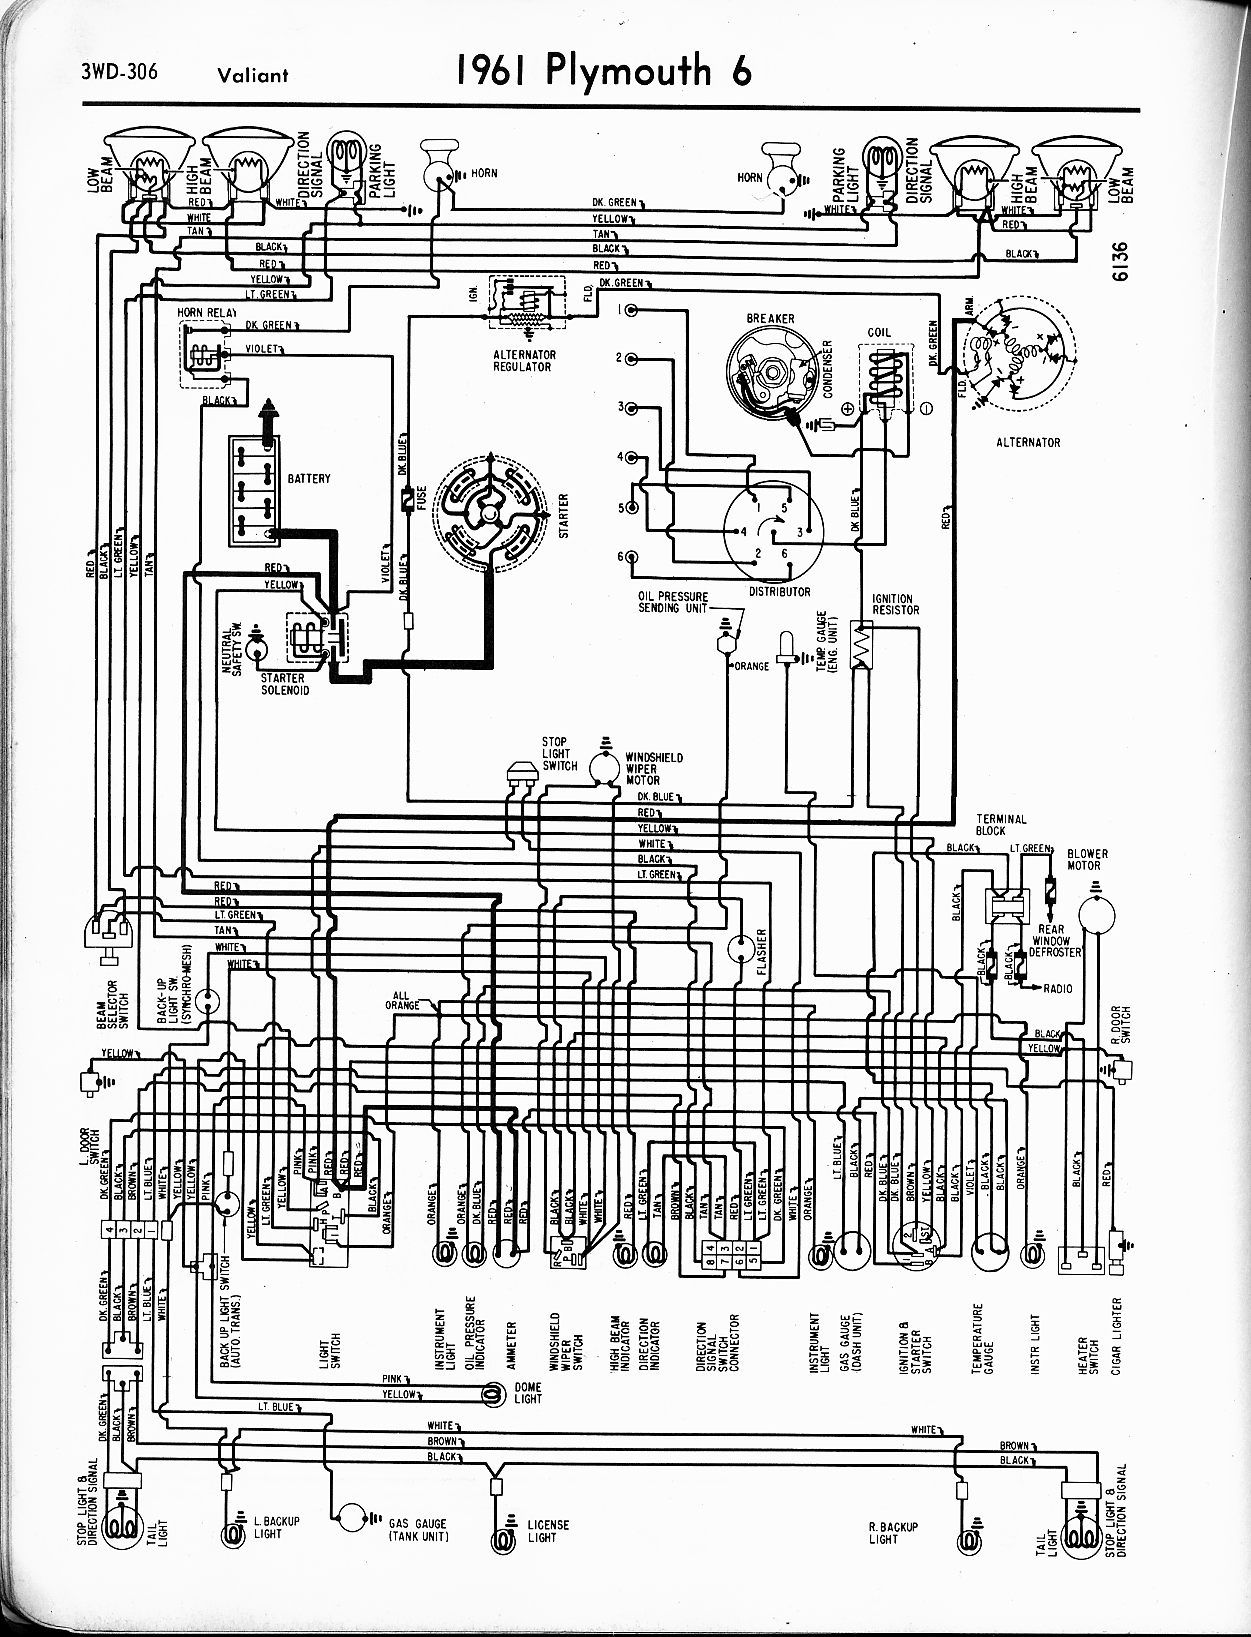 Wiring Diagram For 1974 Plymouth Duster Custom 1975 Fuse Box Valiant Schematic Trusted Rh Soulmatestyle Co Parts Catalog